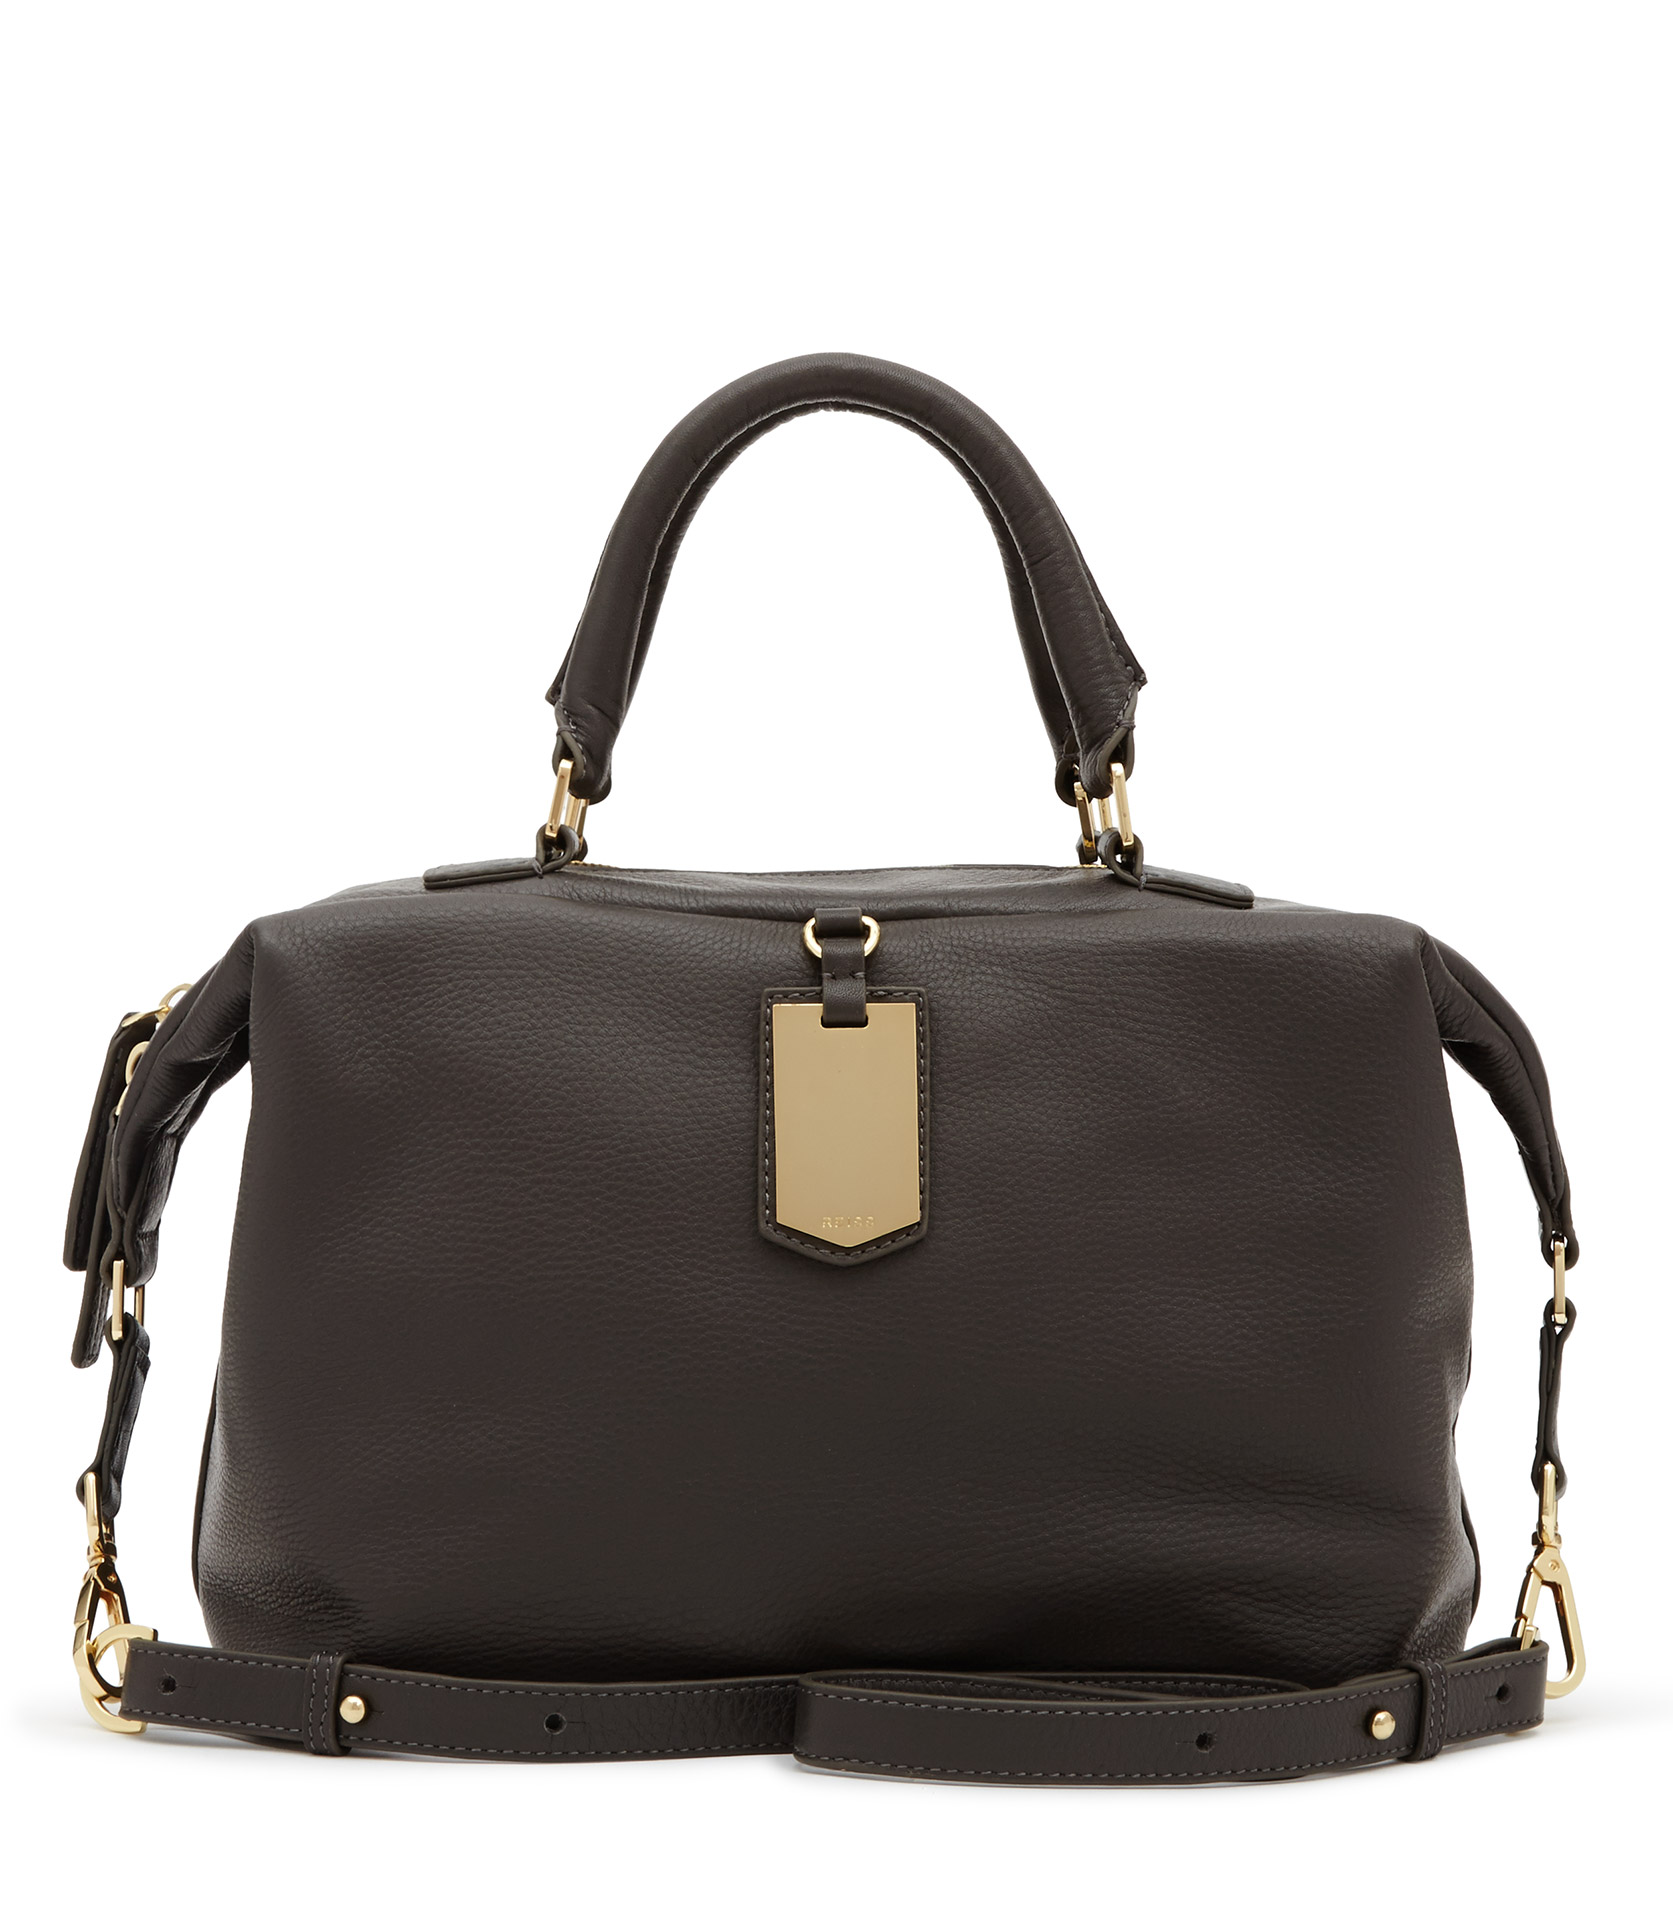 242c092778 Reiss Alma Luggage Tag Handhand Bag in Black - Lyst